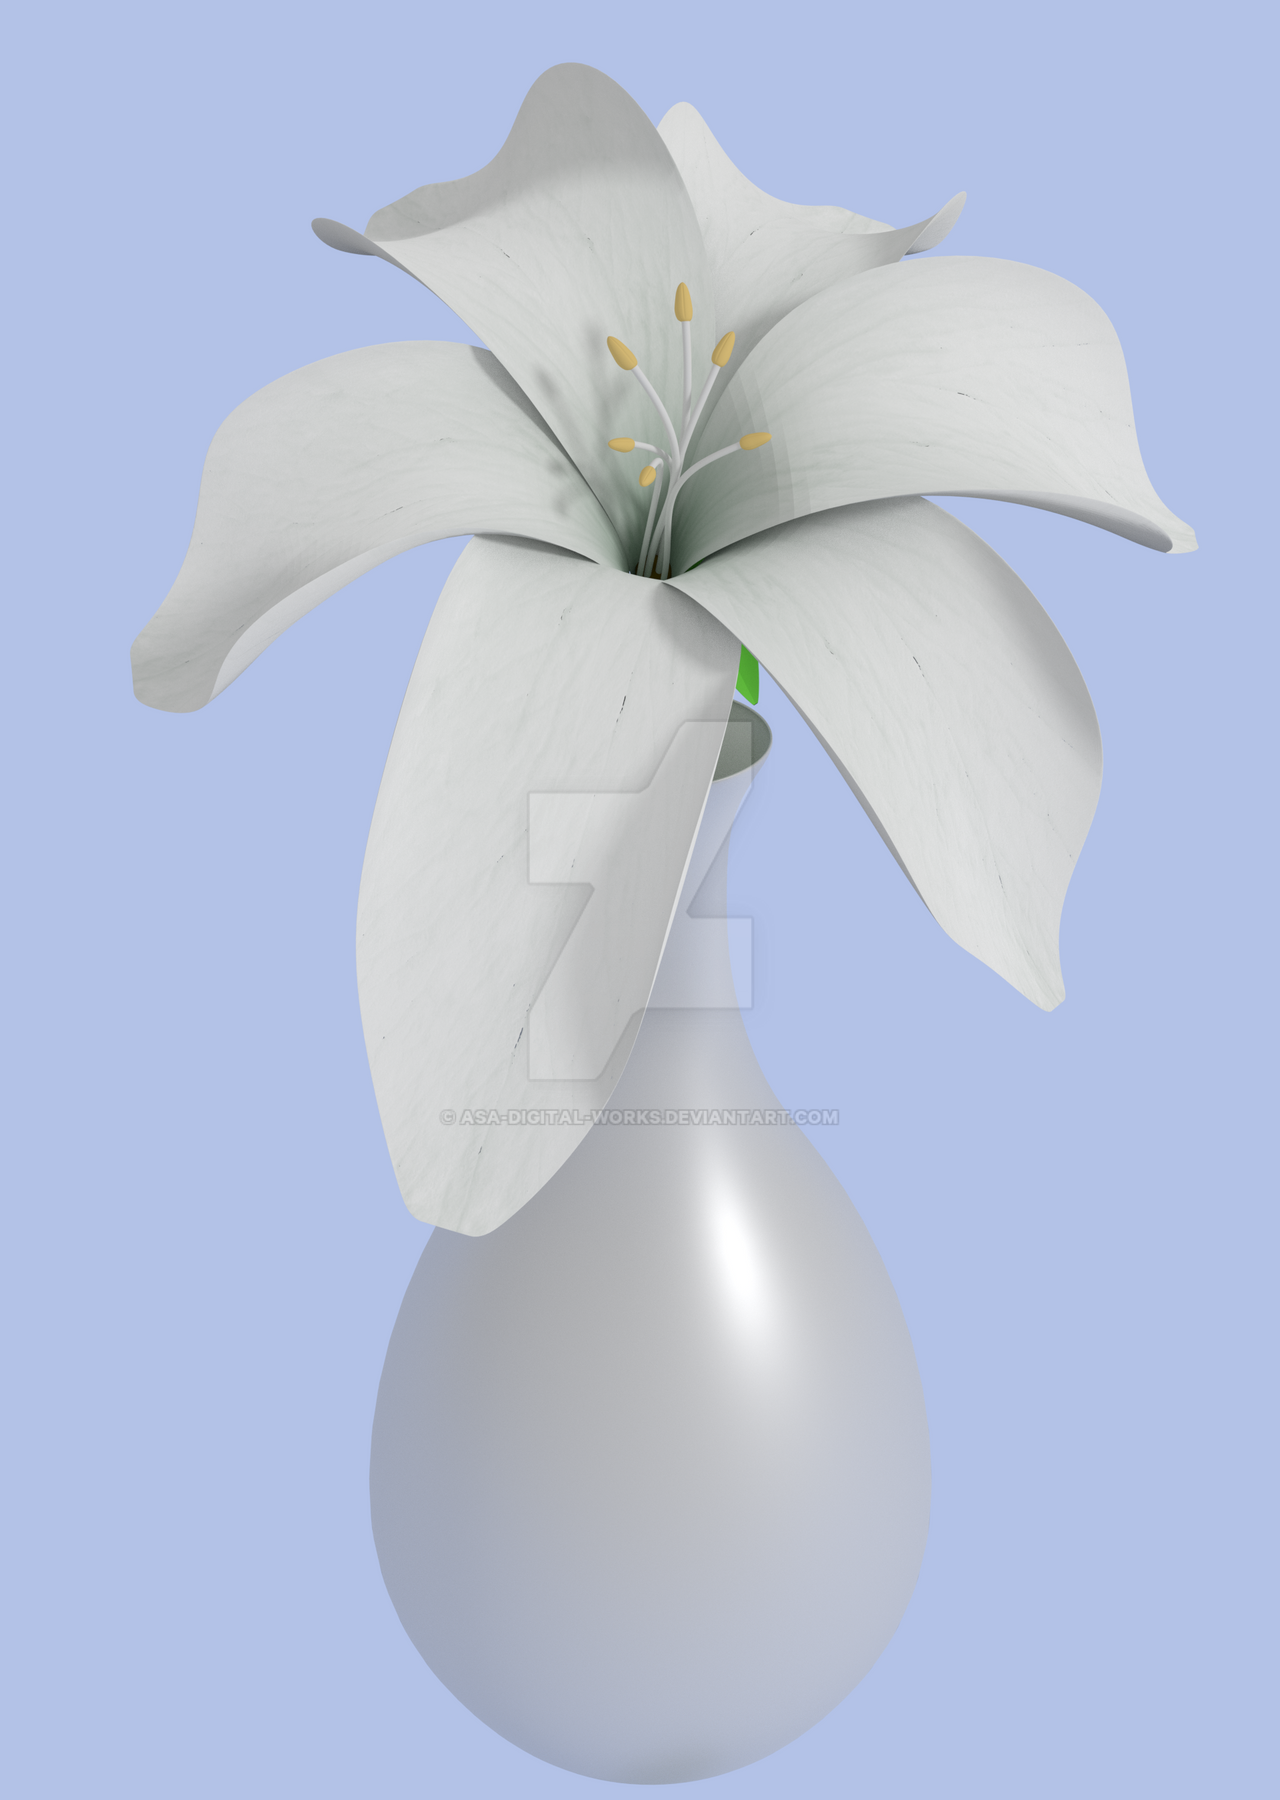 Simple Lily Flower By Asa Digital Works On Deviantart